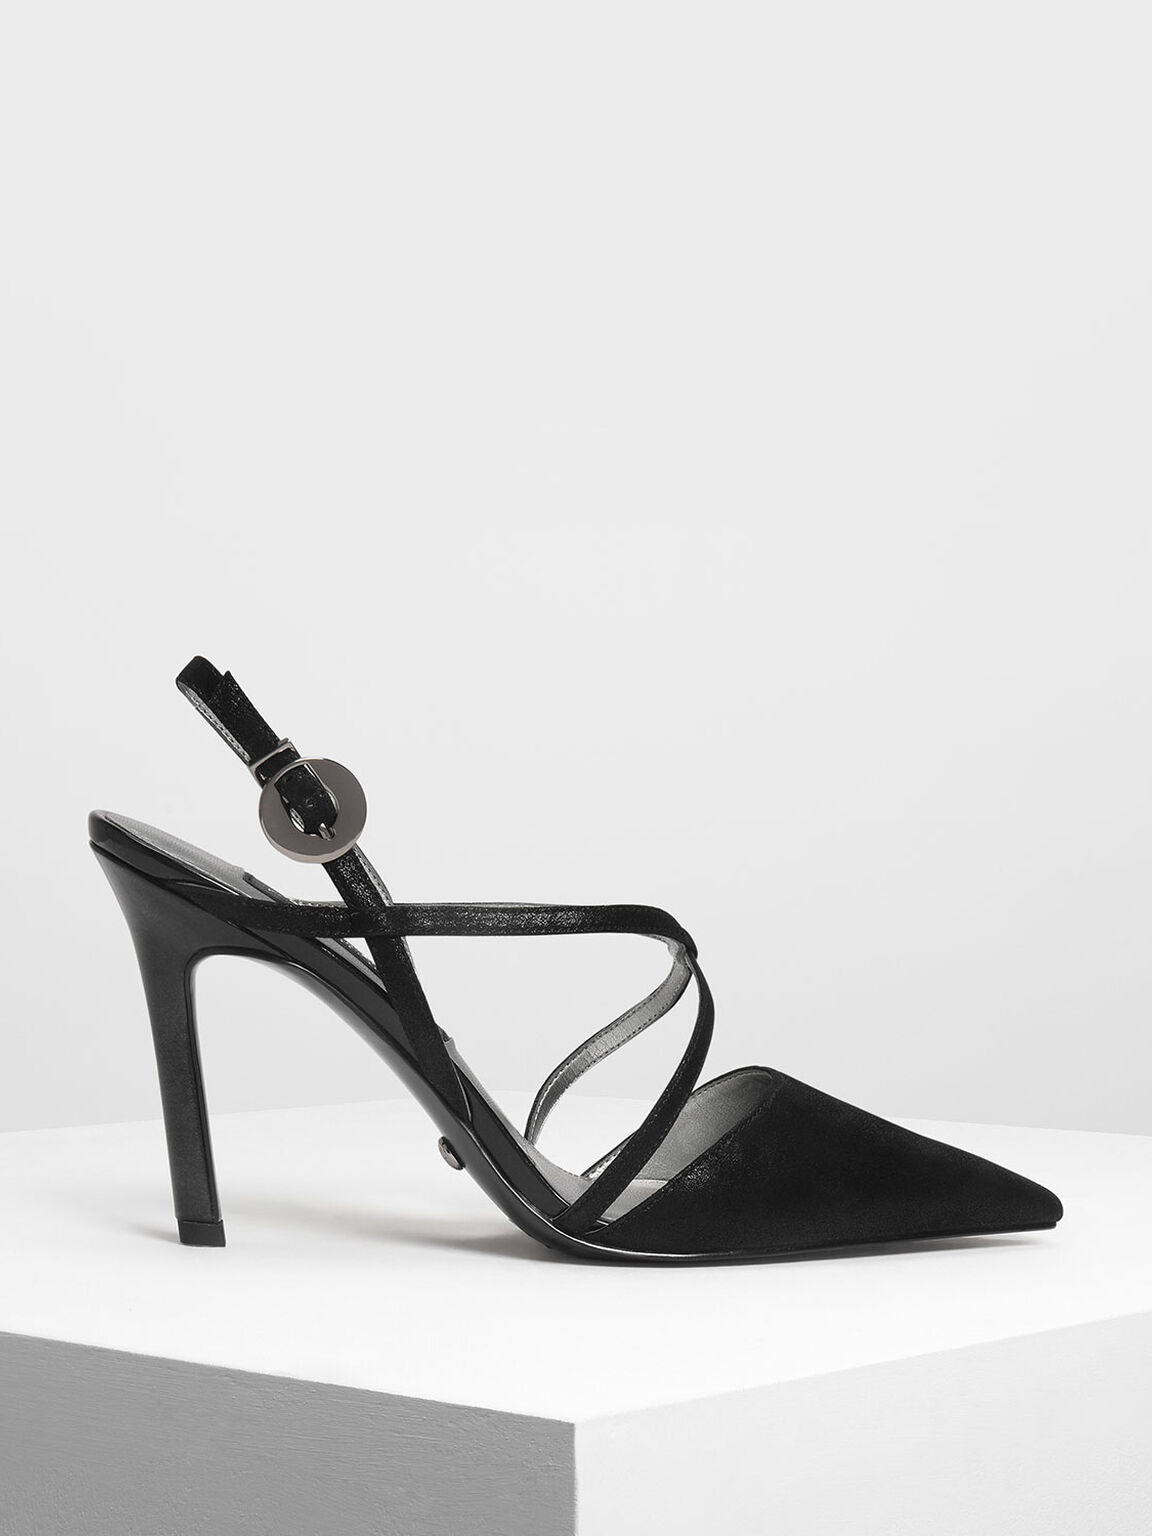 Strappy Criss Cross Leather Heels, Black, hi-res